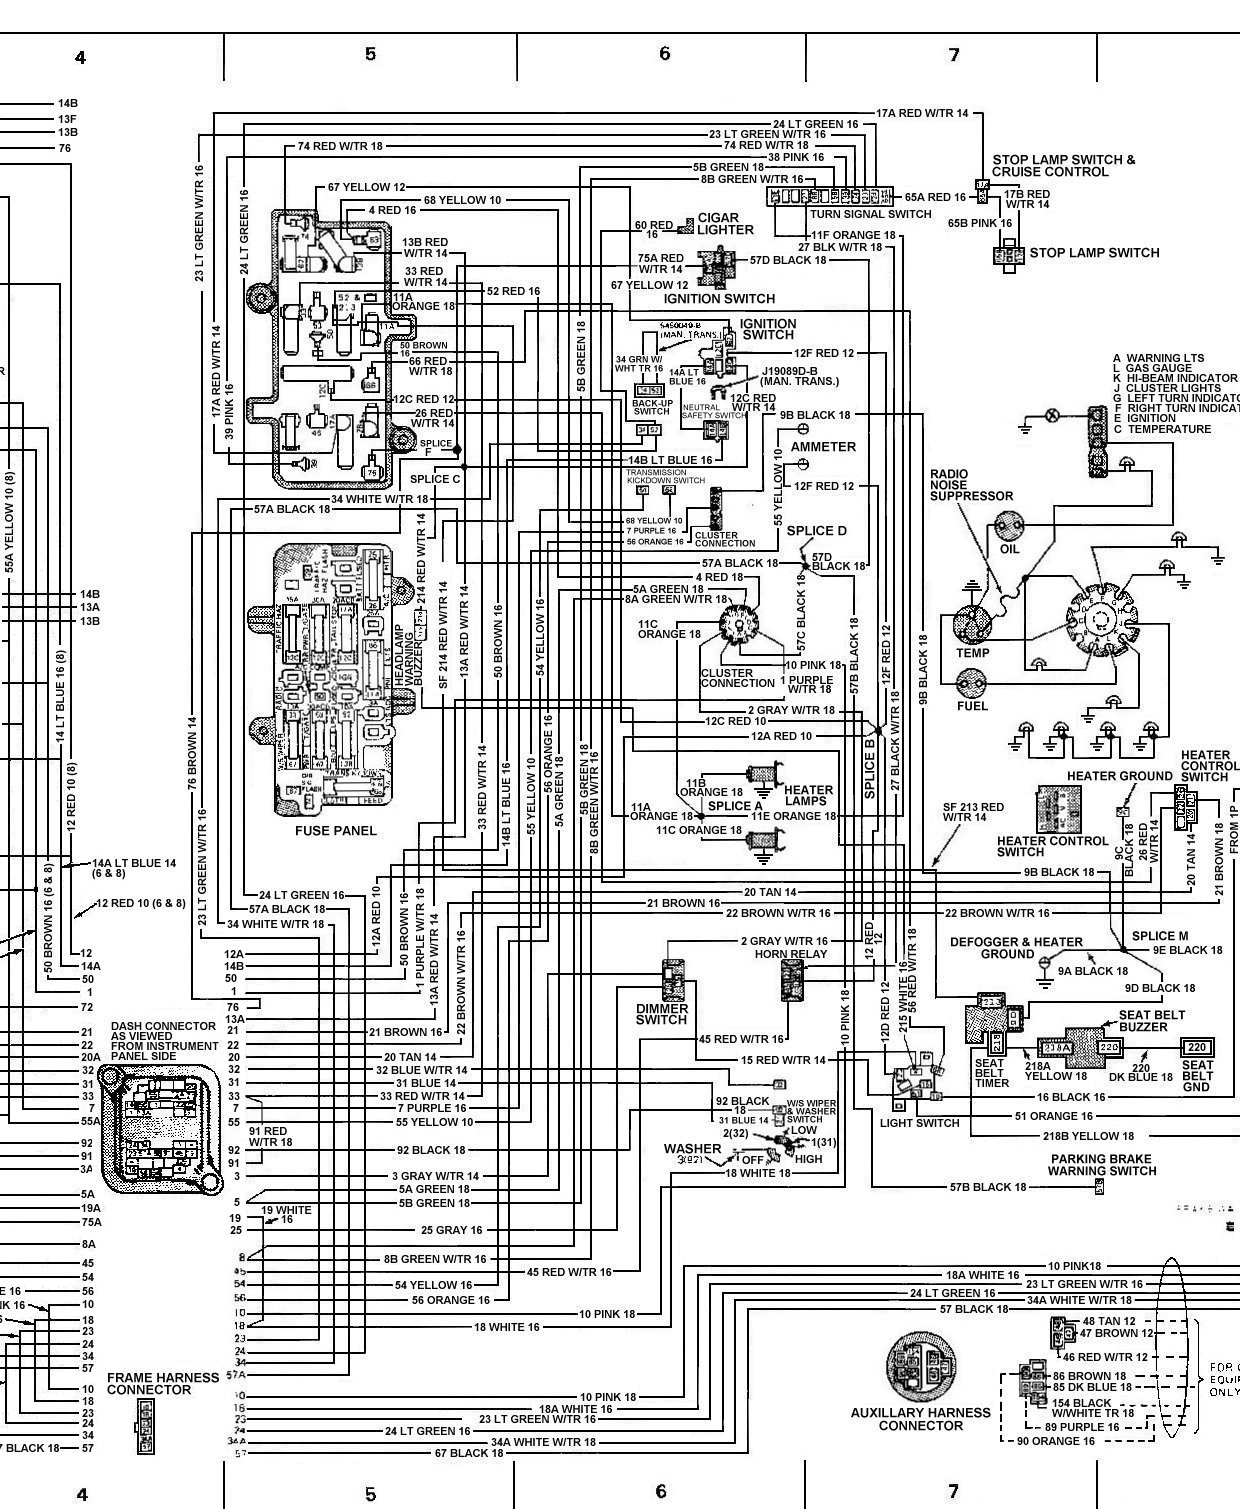 fine banshee wiring diagram pictures wiring schematics and 2004 yamaha bear tracker 250 wiring diagram nice yamaha bear tracker wiring diagram image everything you need